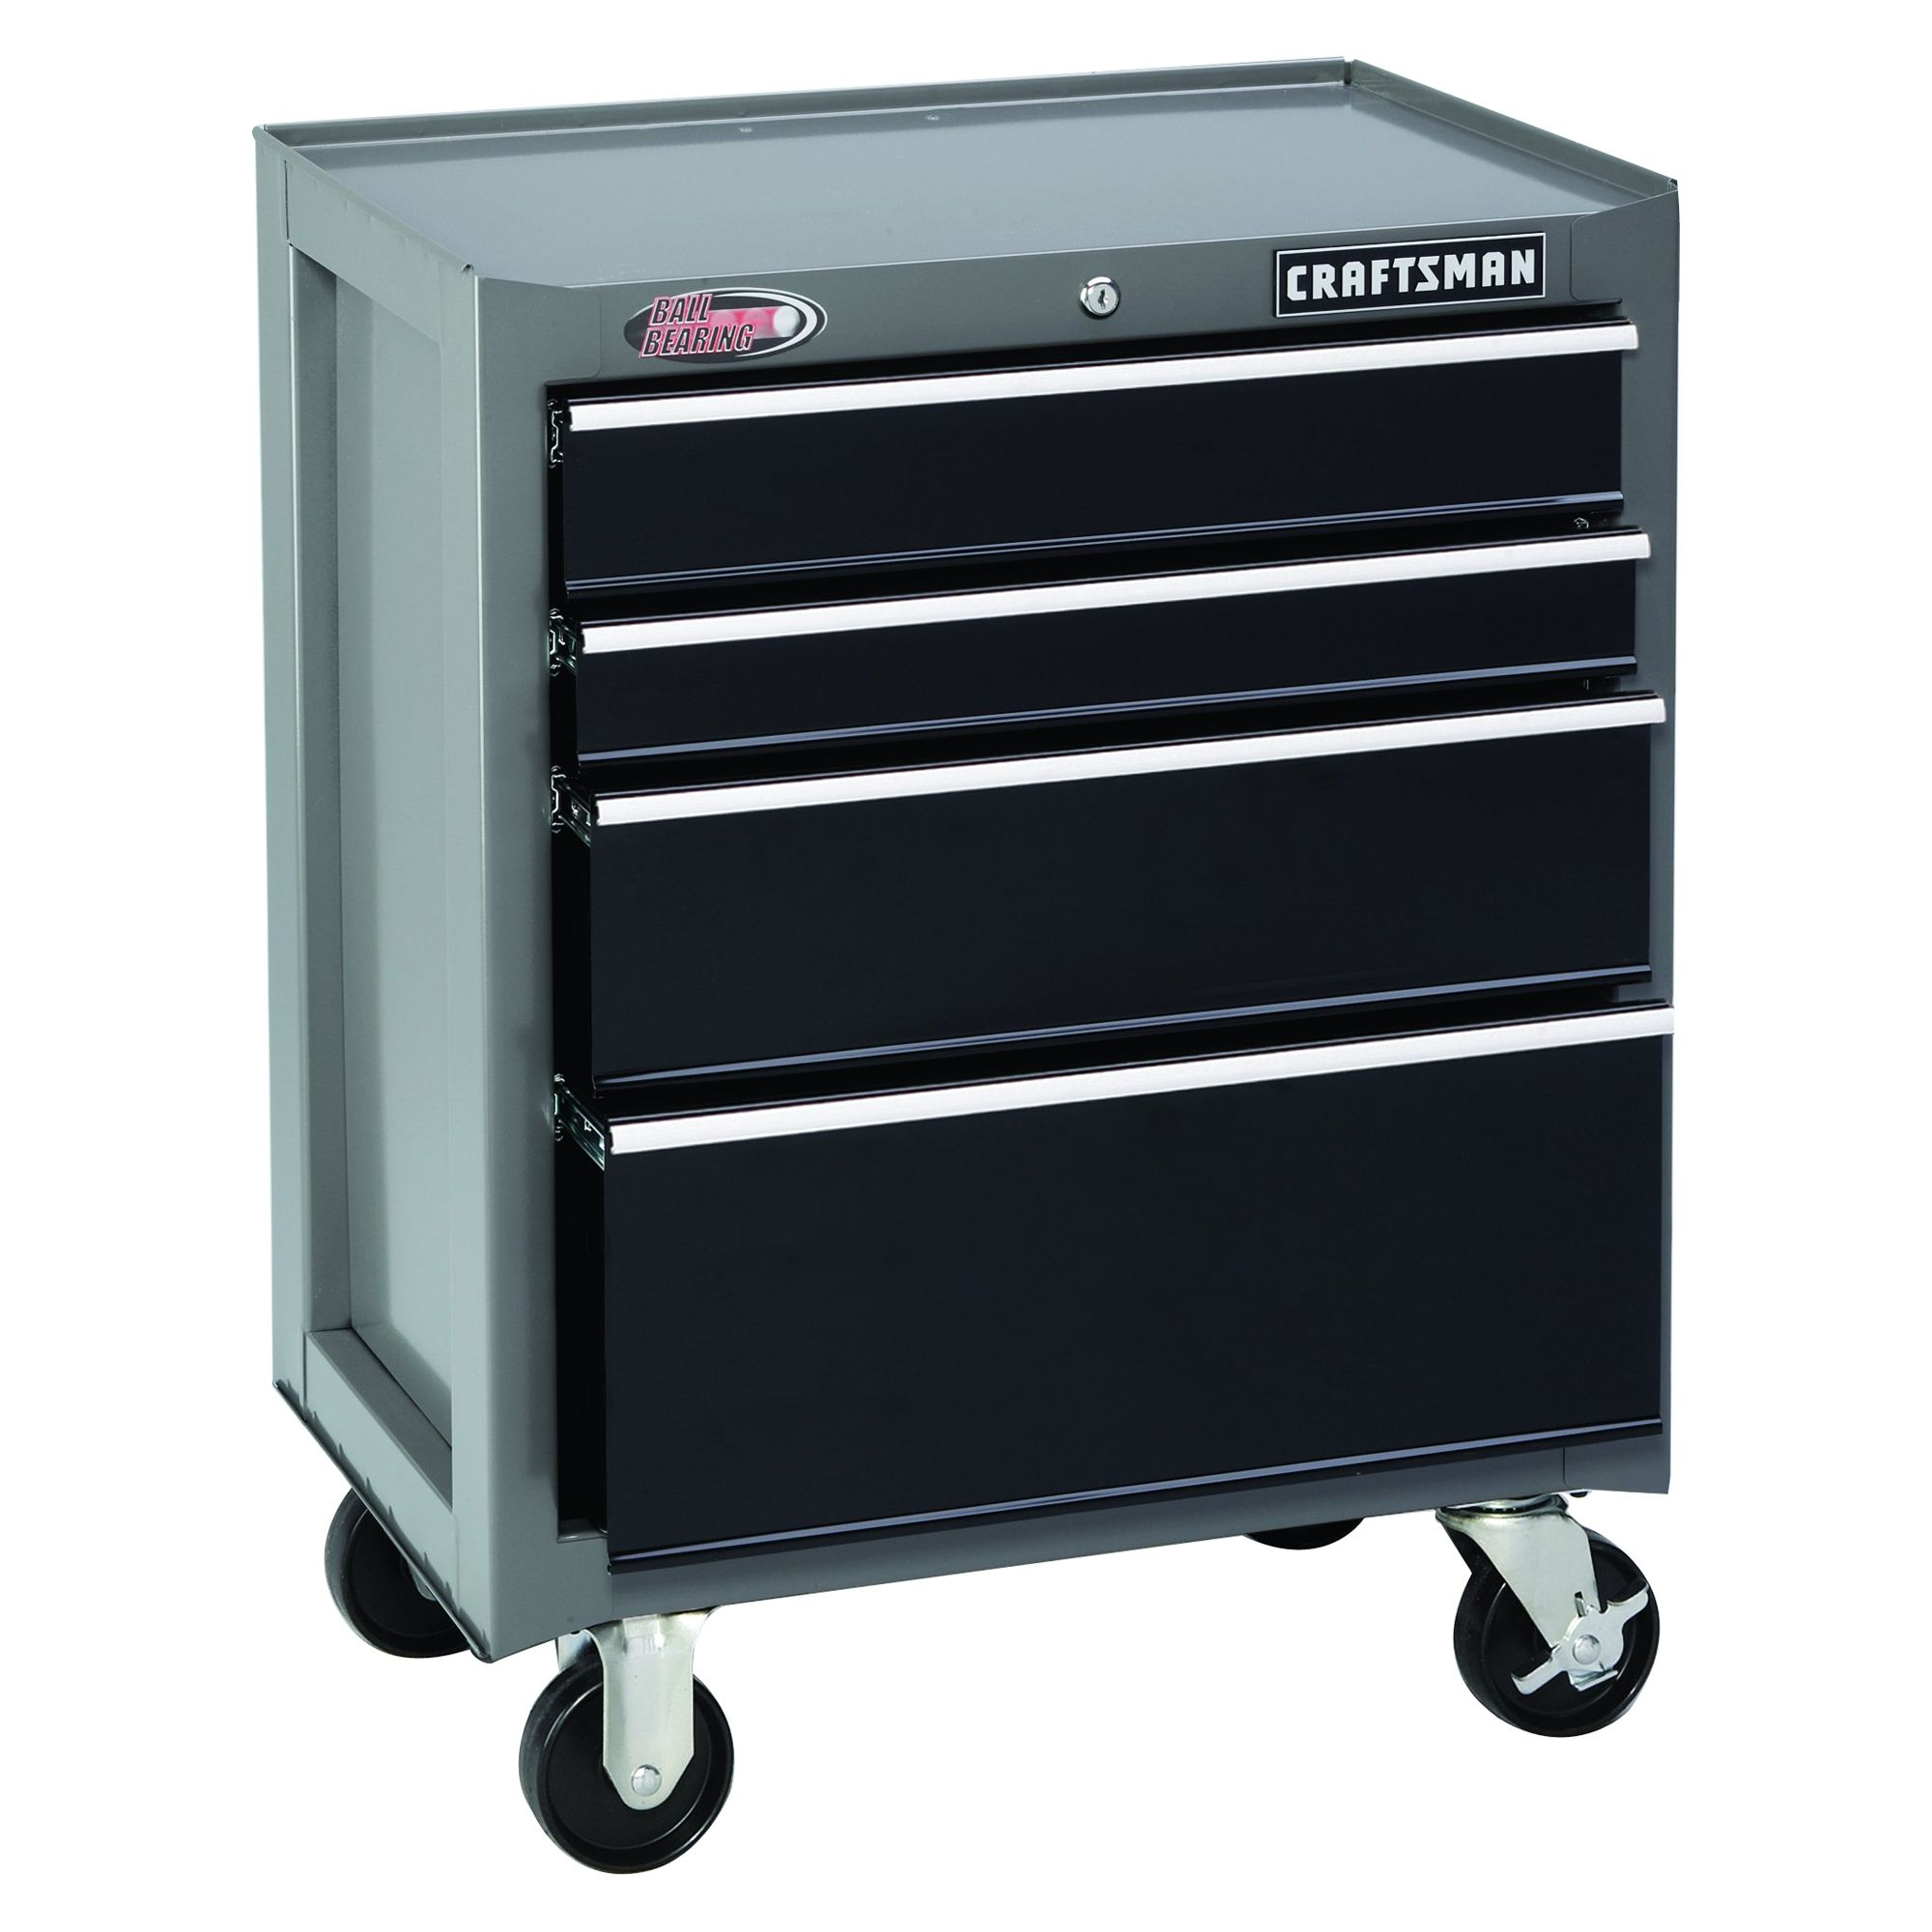 "Craftsman 26"""" Wide 4-Drawer Ball-Bearing Bottom Chest - Platinum/Black"